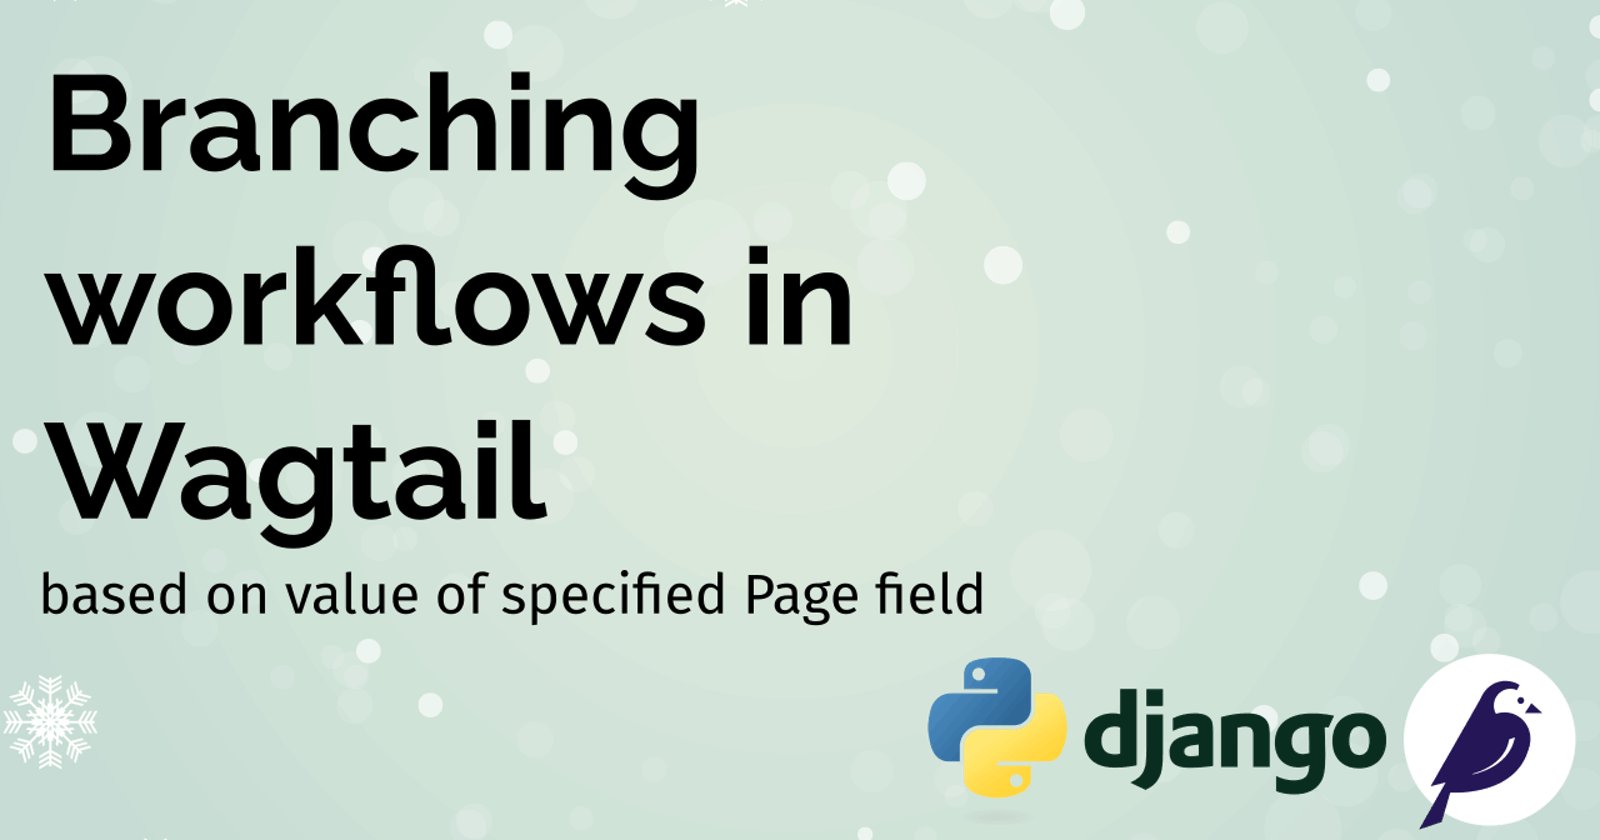 Branching workflows in Wagtail